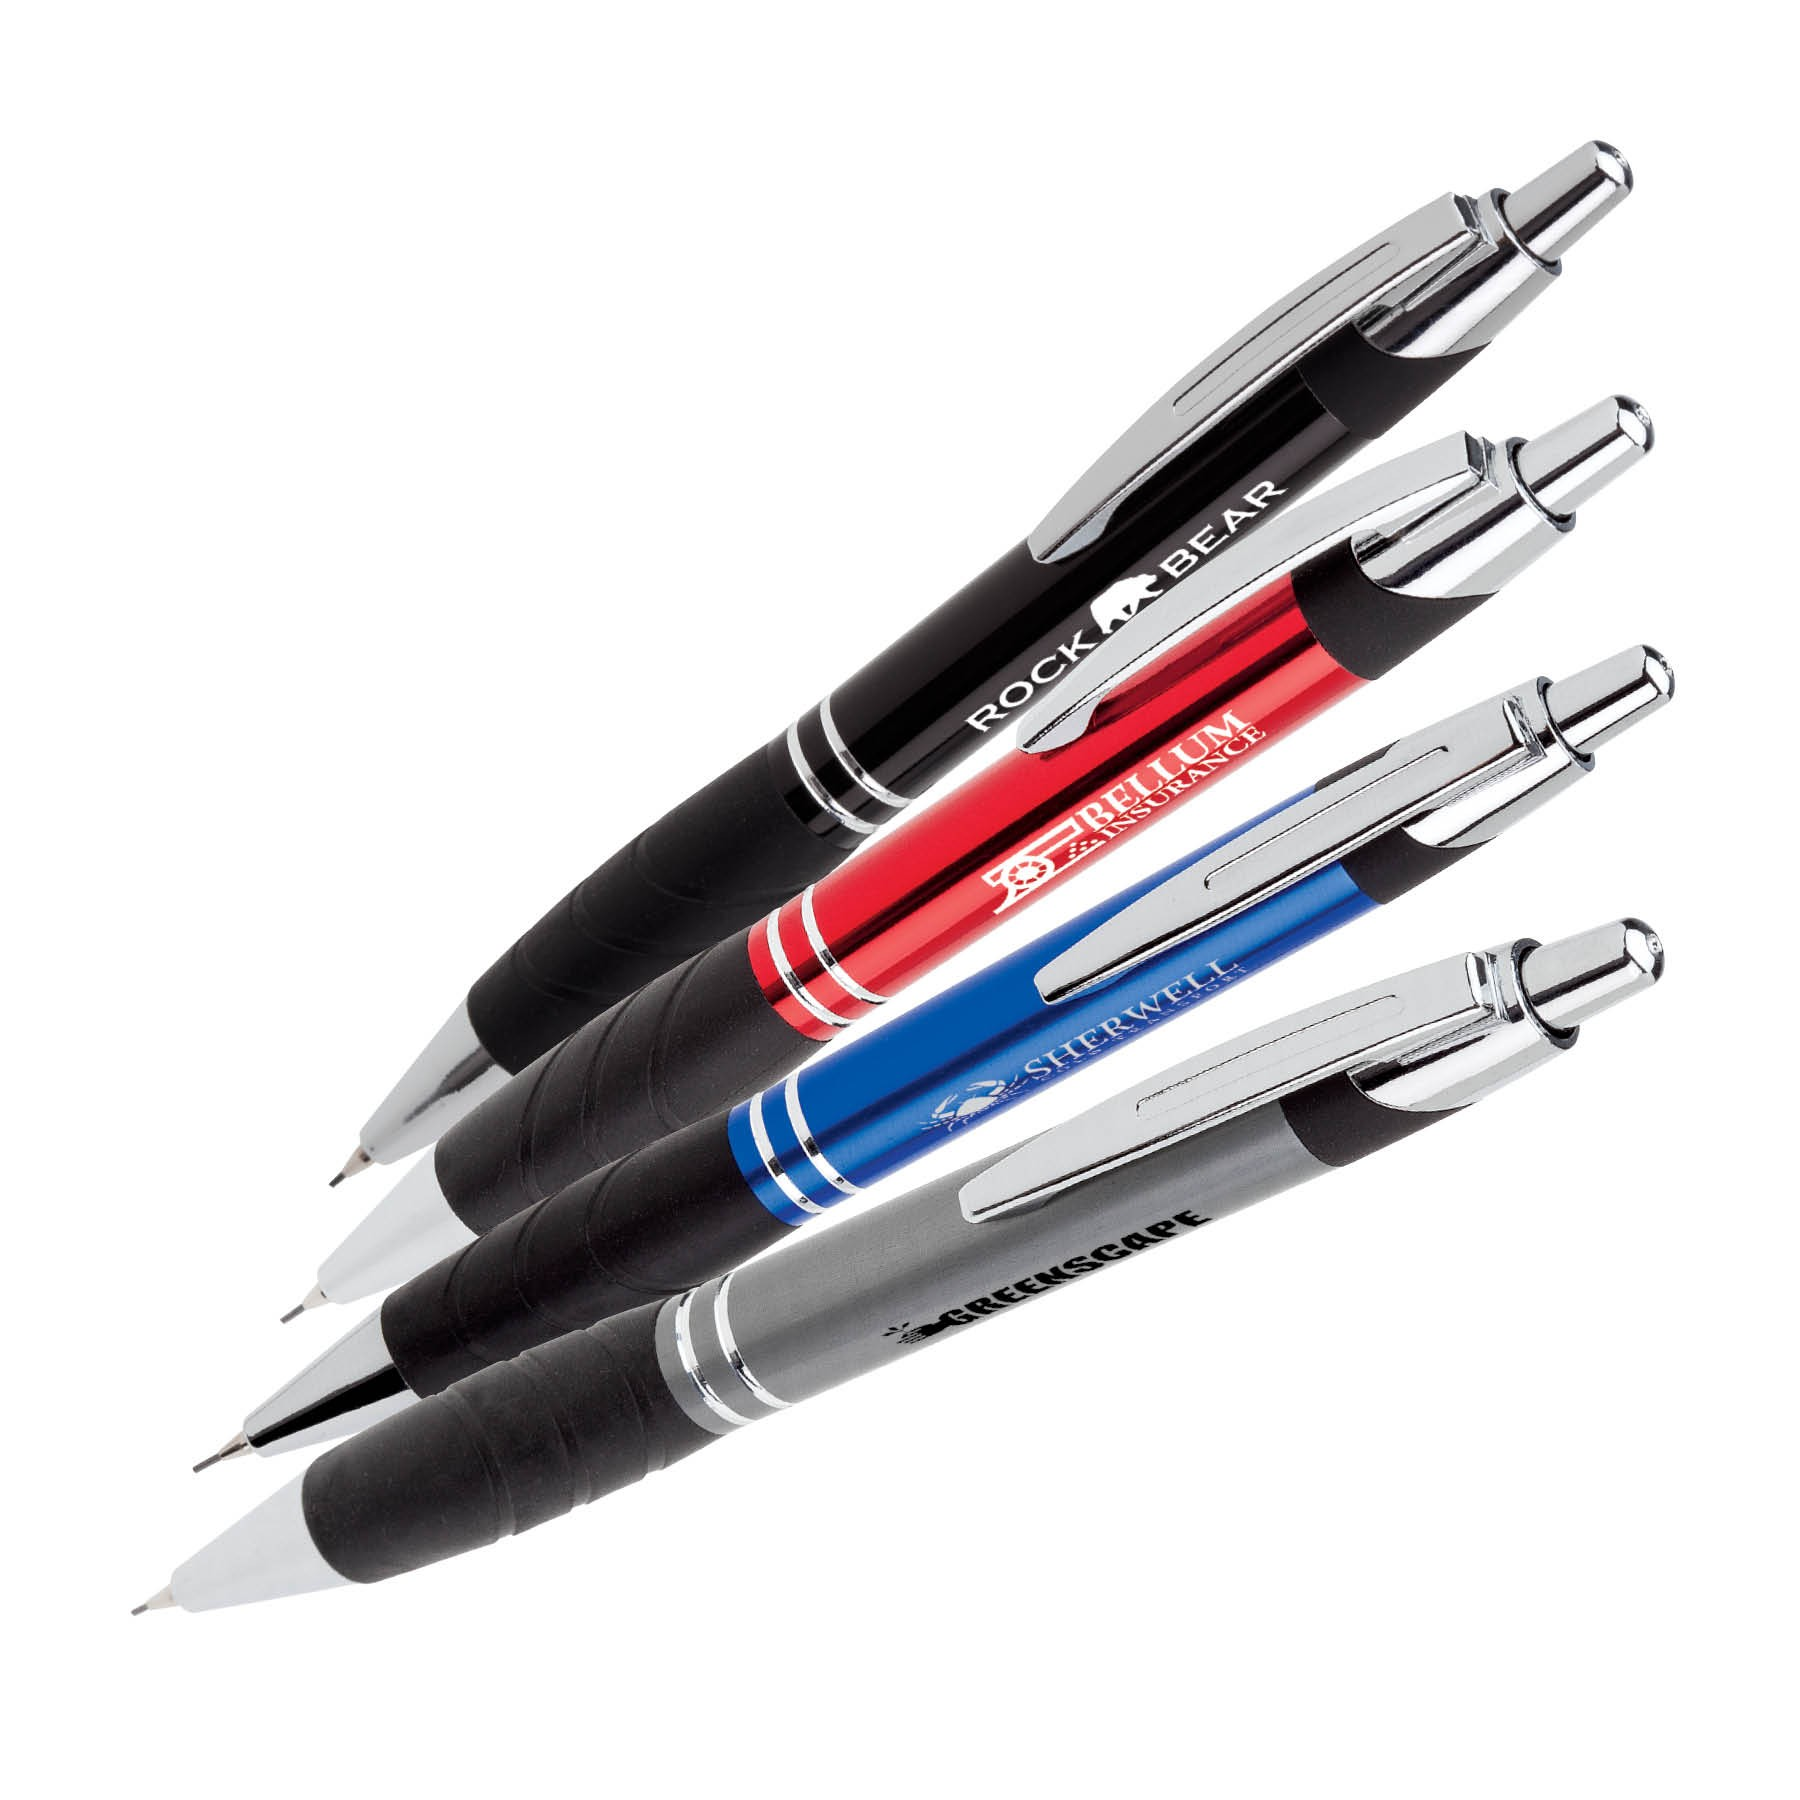 Edge Mechanical Pencil